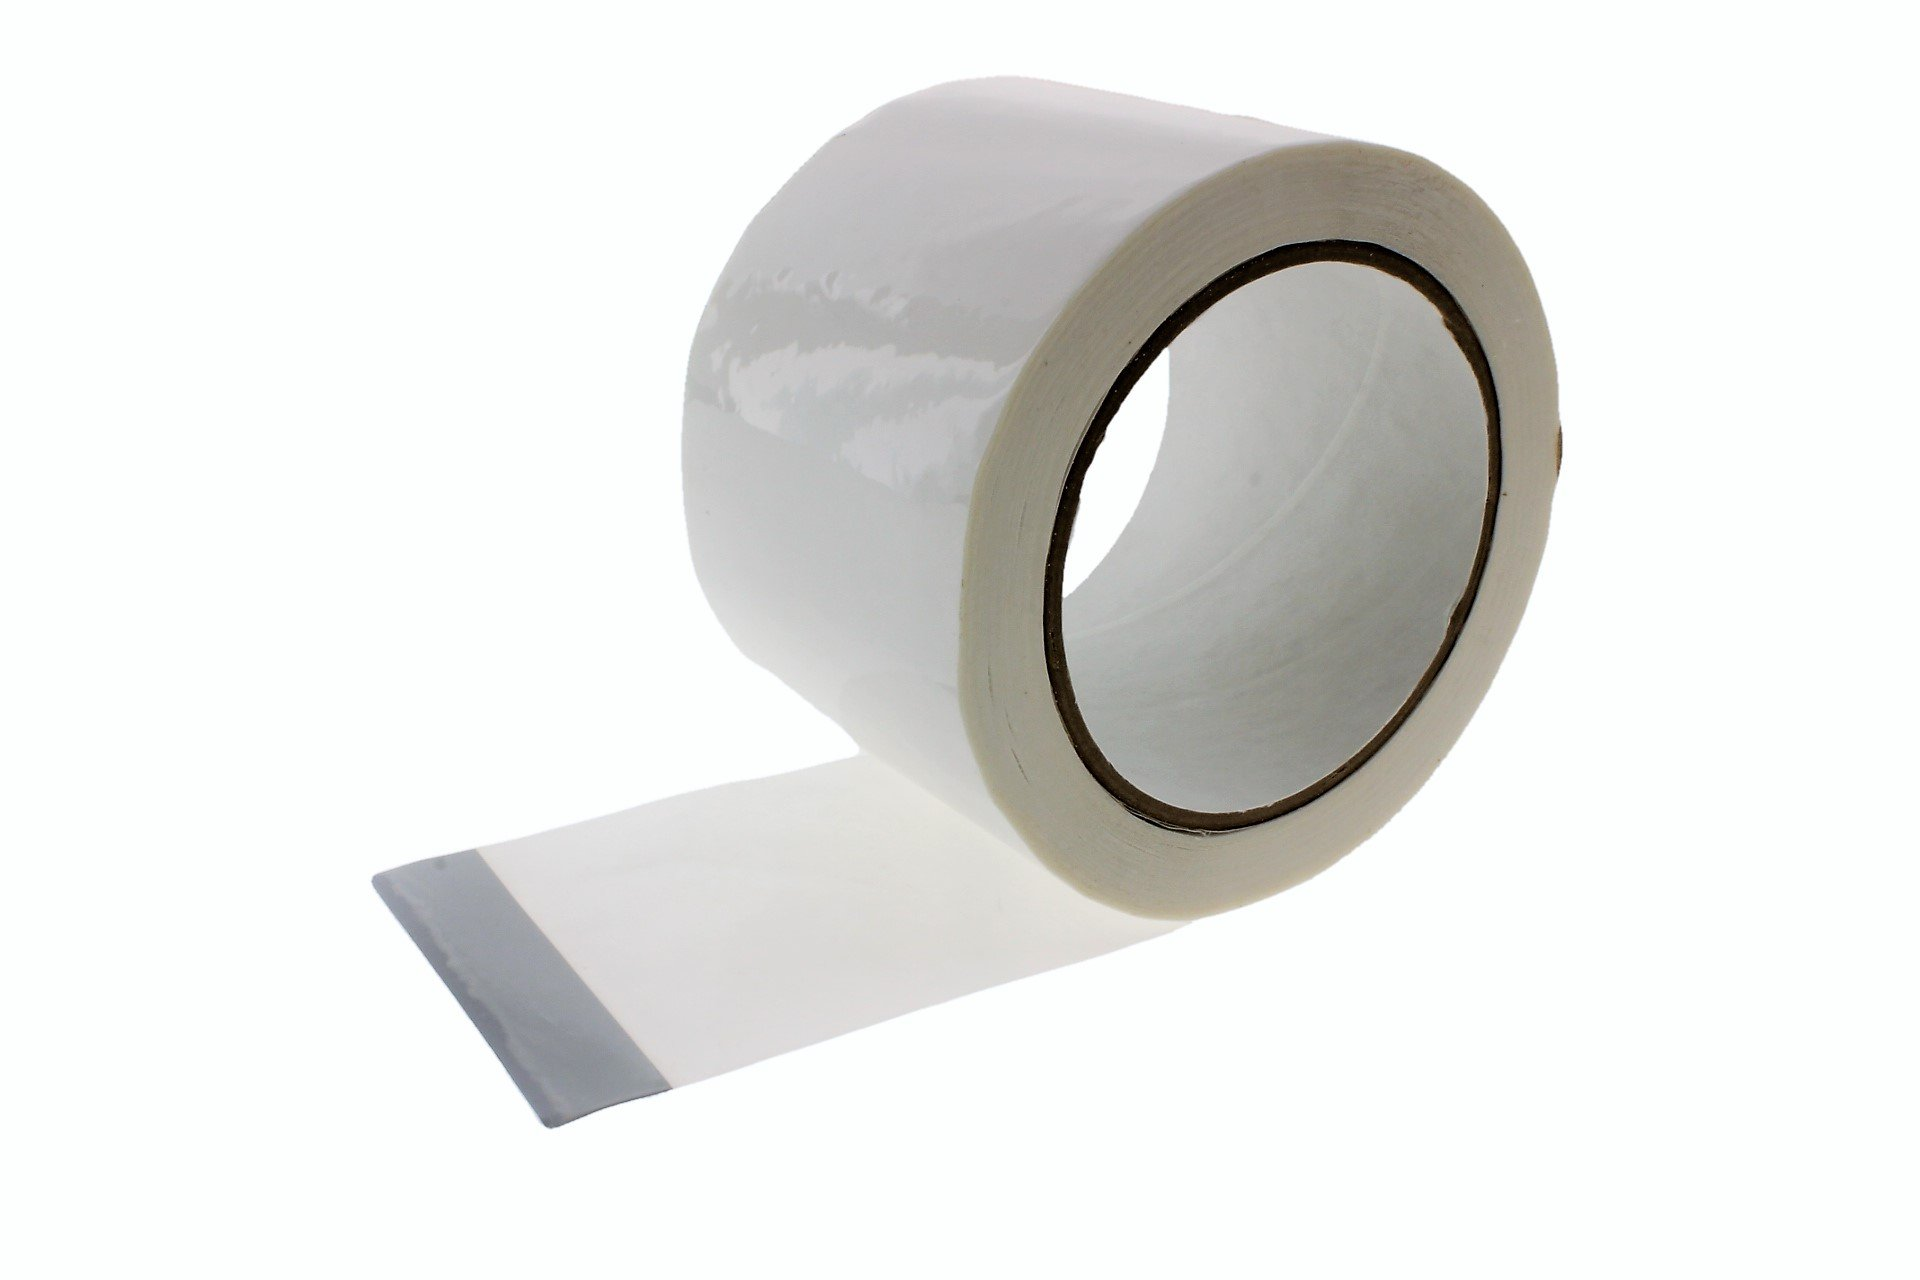 3'' in x 60 yd White House Wrap Tape Sheathing Building Wrapping Housewrap Sheath Tape Insulation Seaming Plastic Sheets FOR Sealing TYVEK in Construction or Moisture Dust barrier Asbestos Abatement